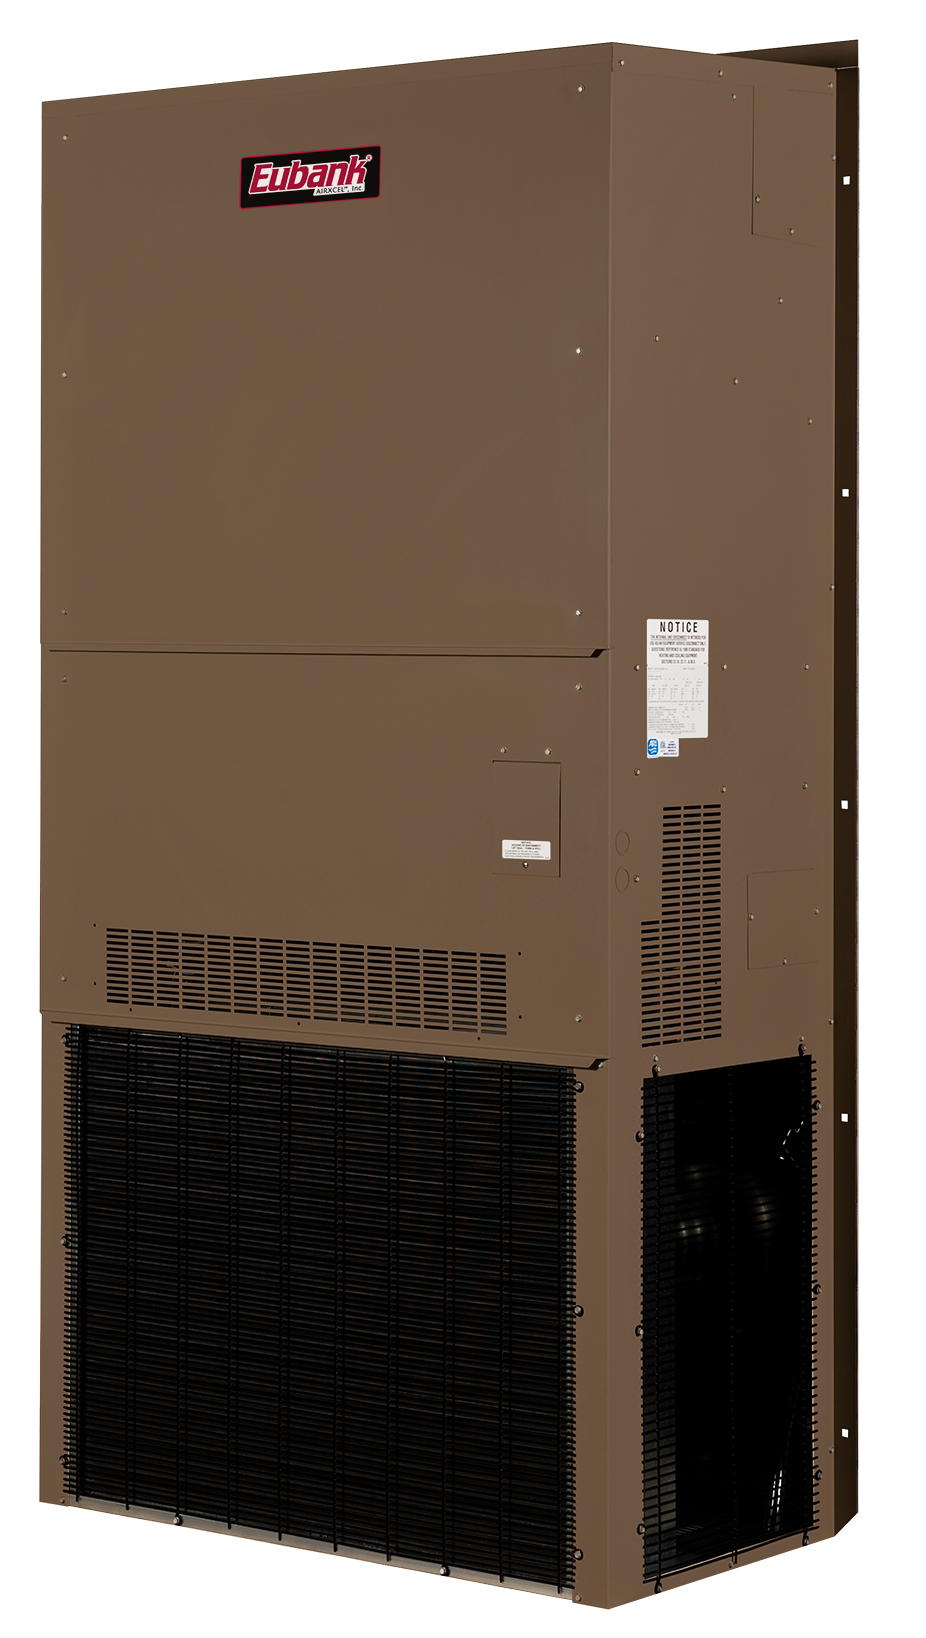 Eubank WalPac HP Heat Pump